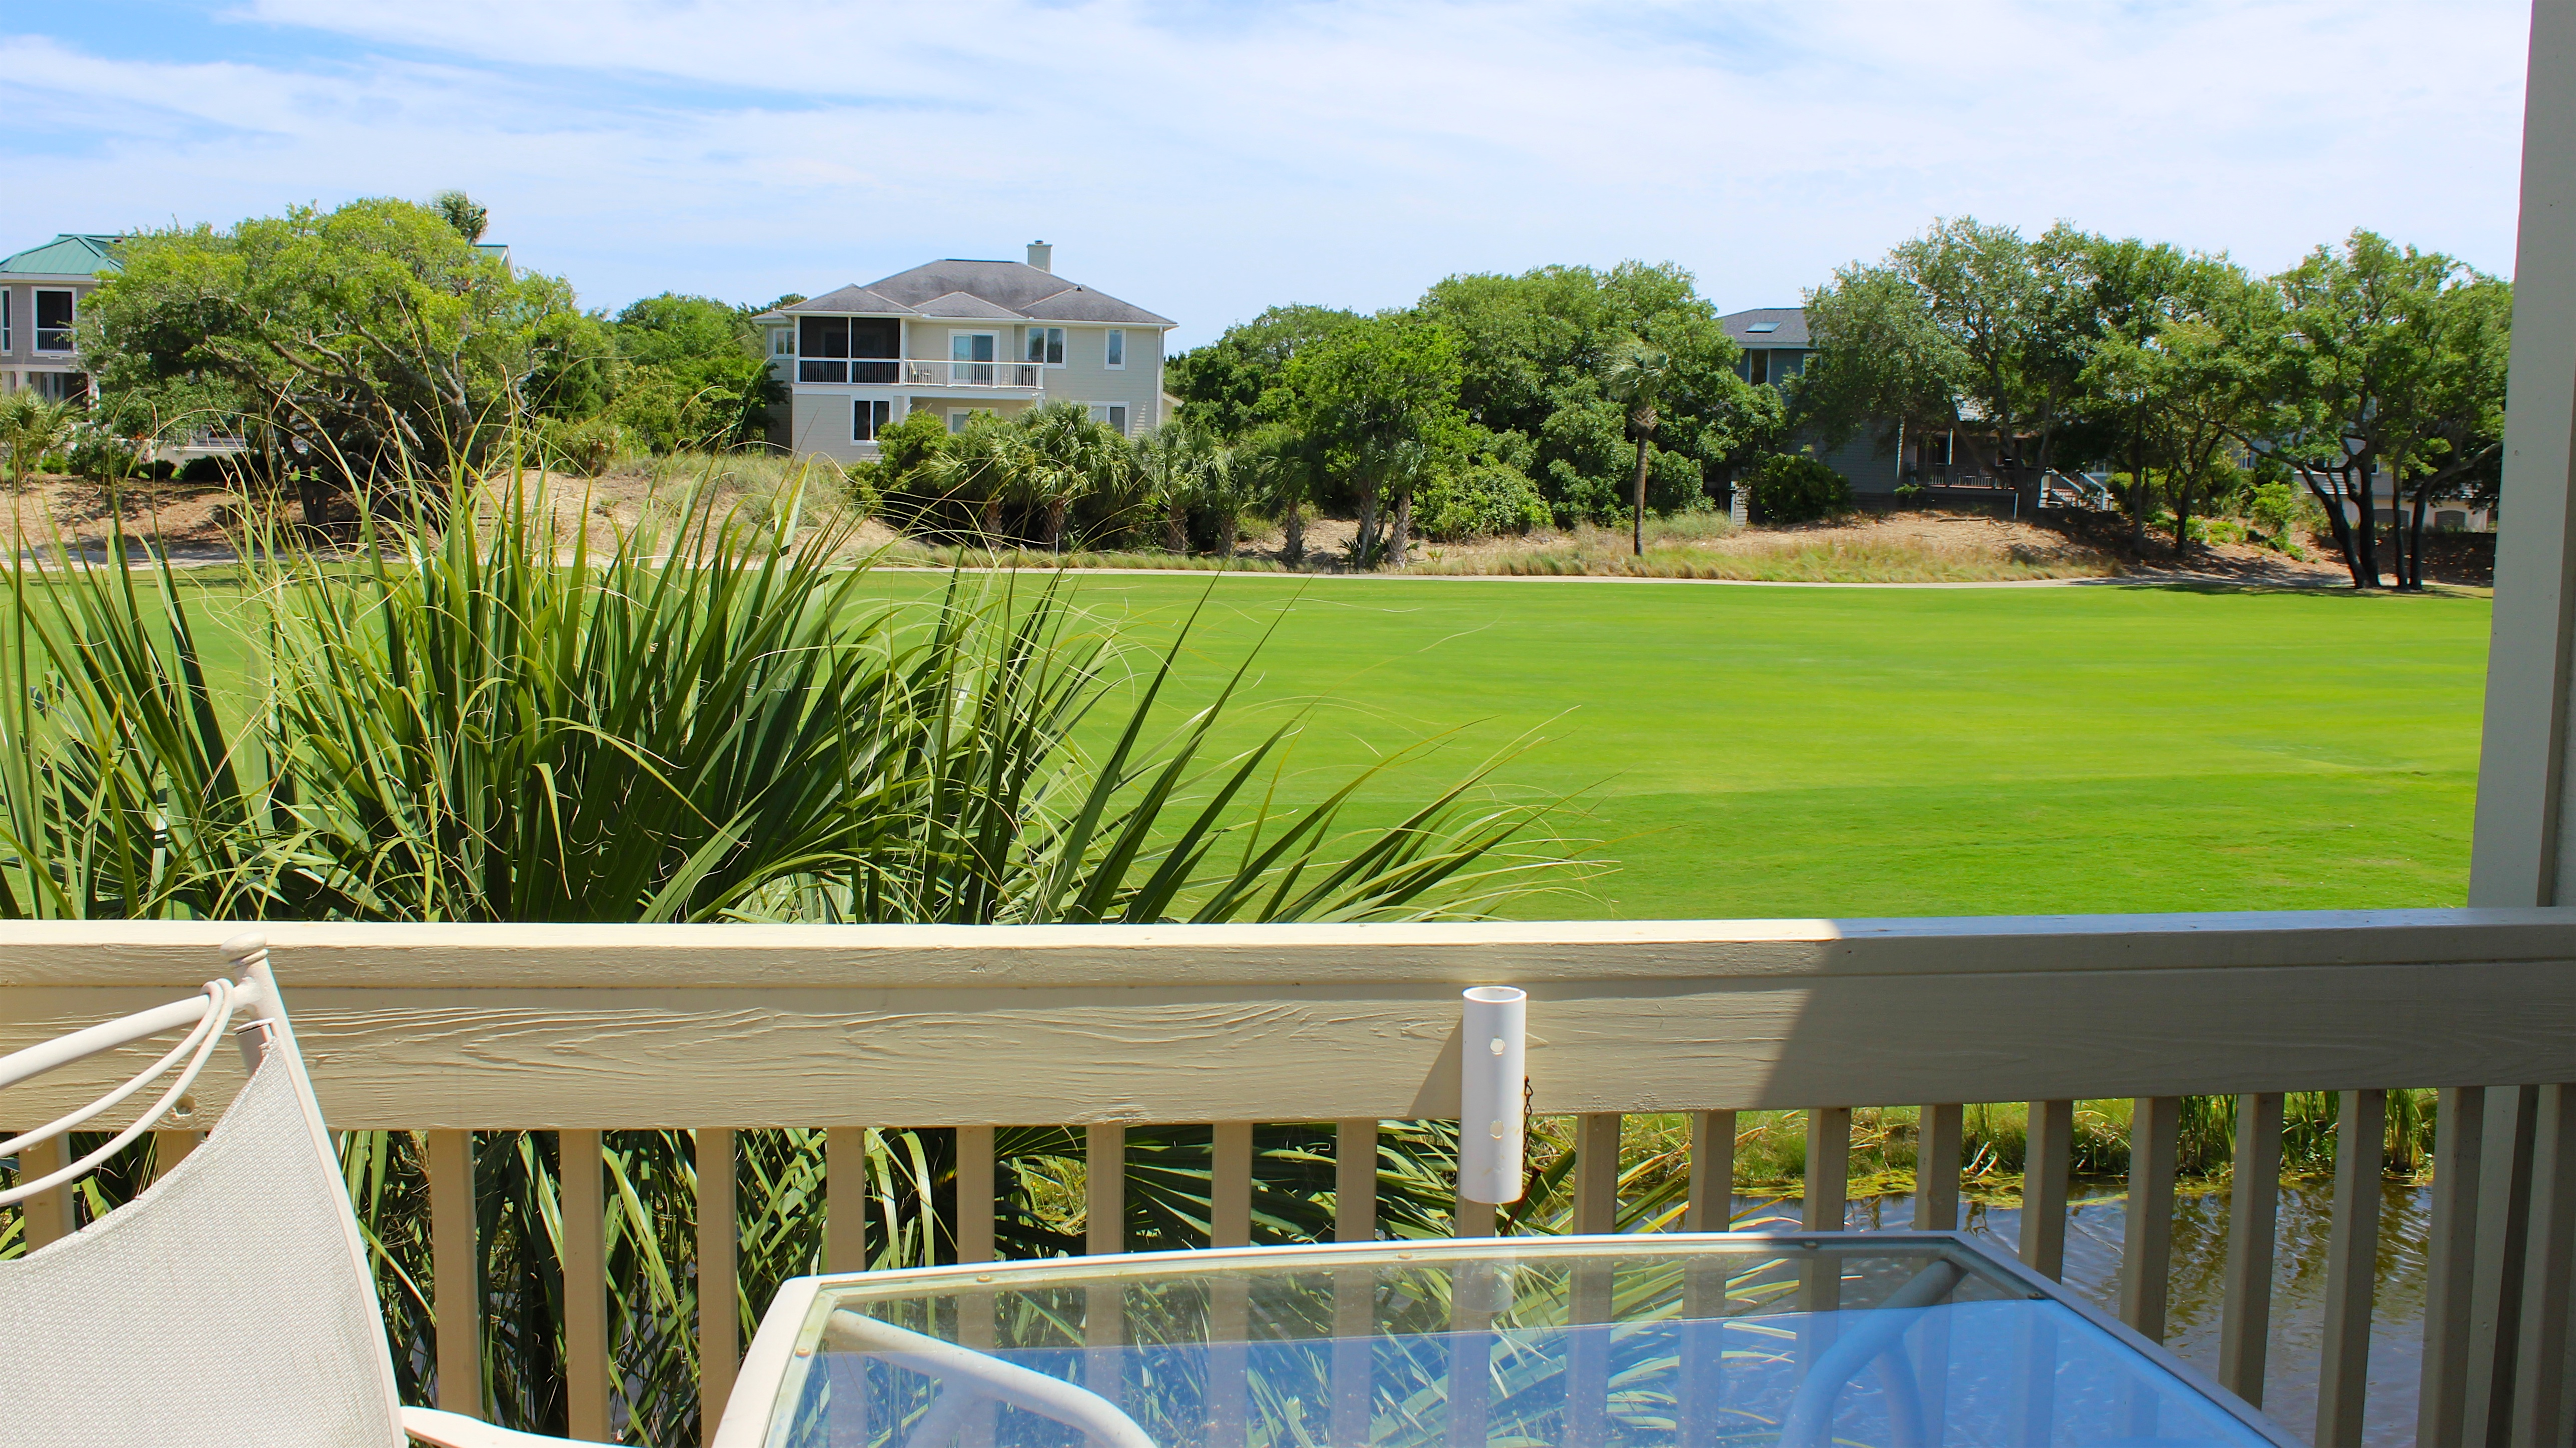 With three decks, there is plenty of outdoor space to enjoy Seabrook's beauty.